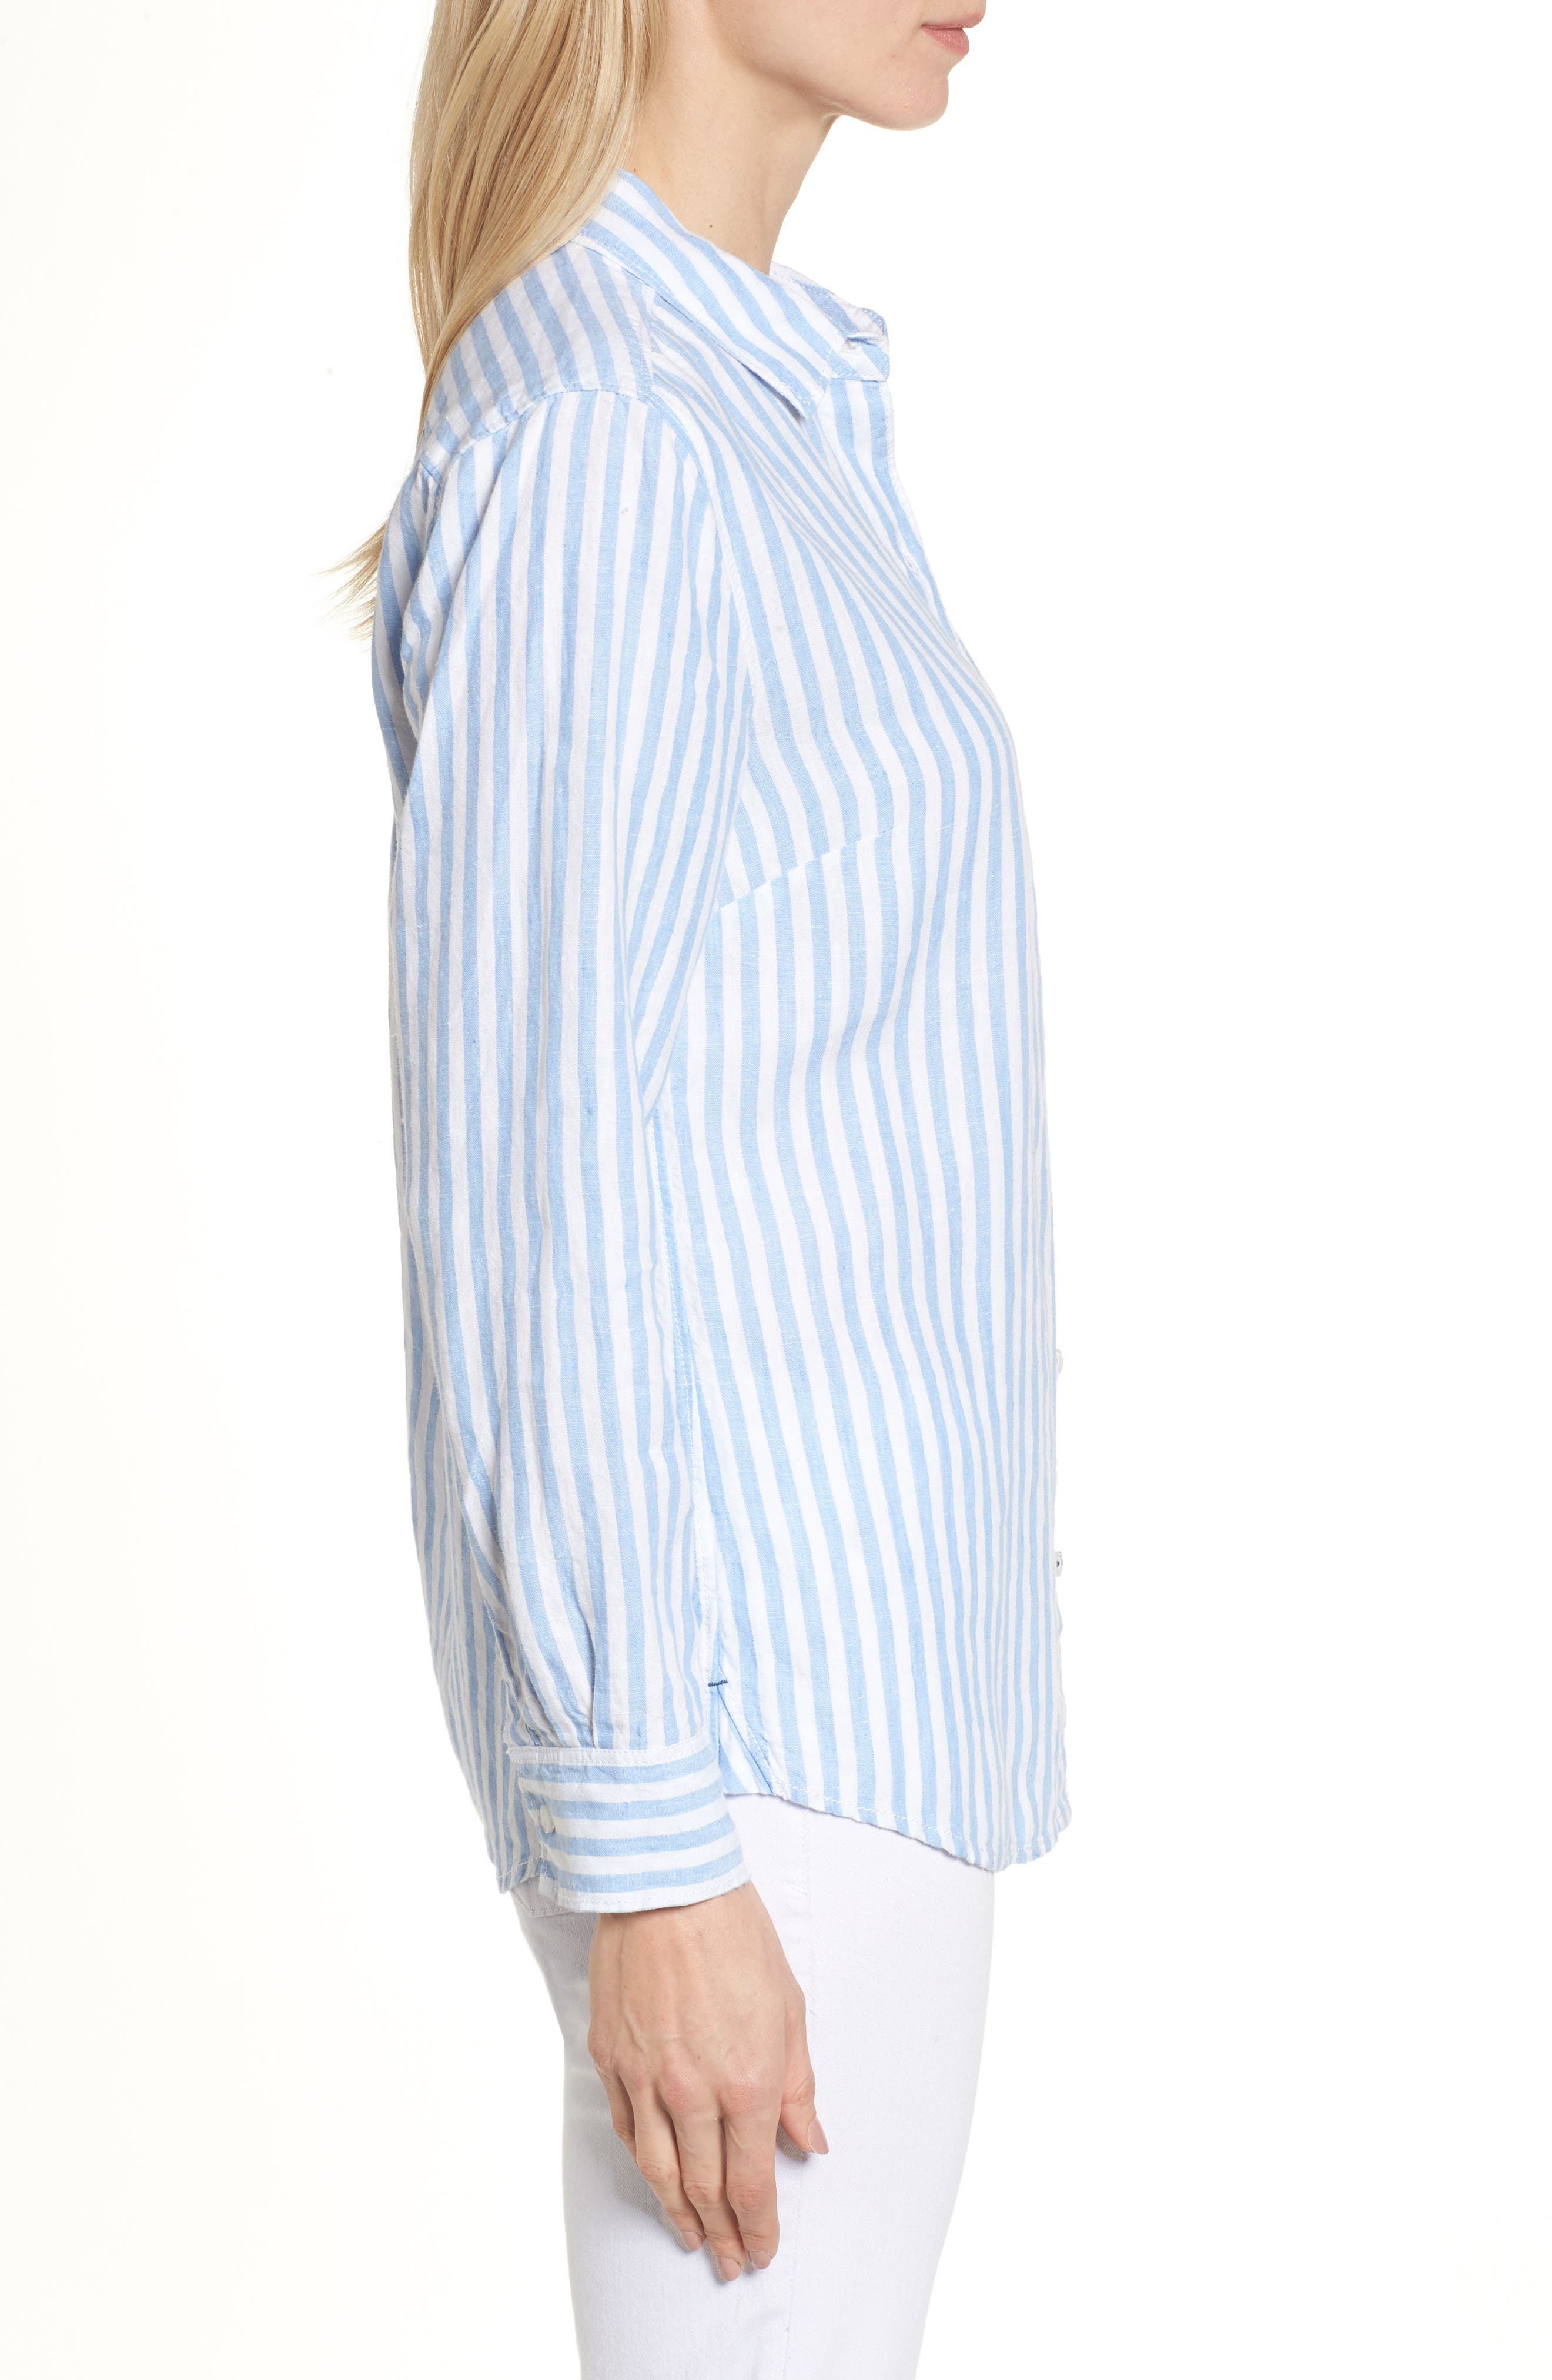 Cabana Stripe Button-Up Top,                             Alternate thumbnail 3, color,                             Dusty Lupine